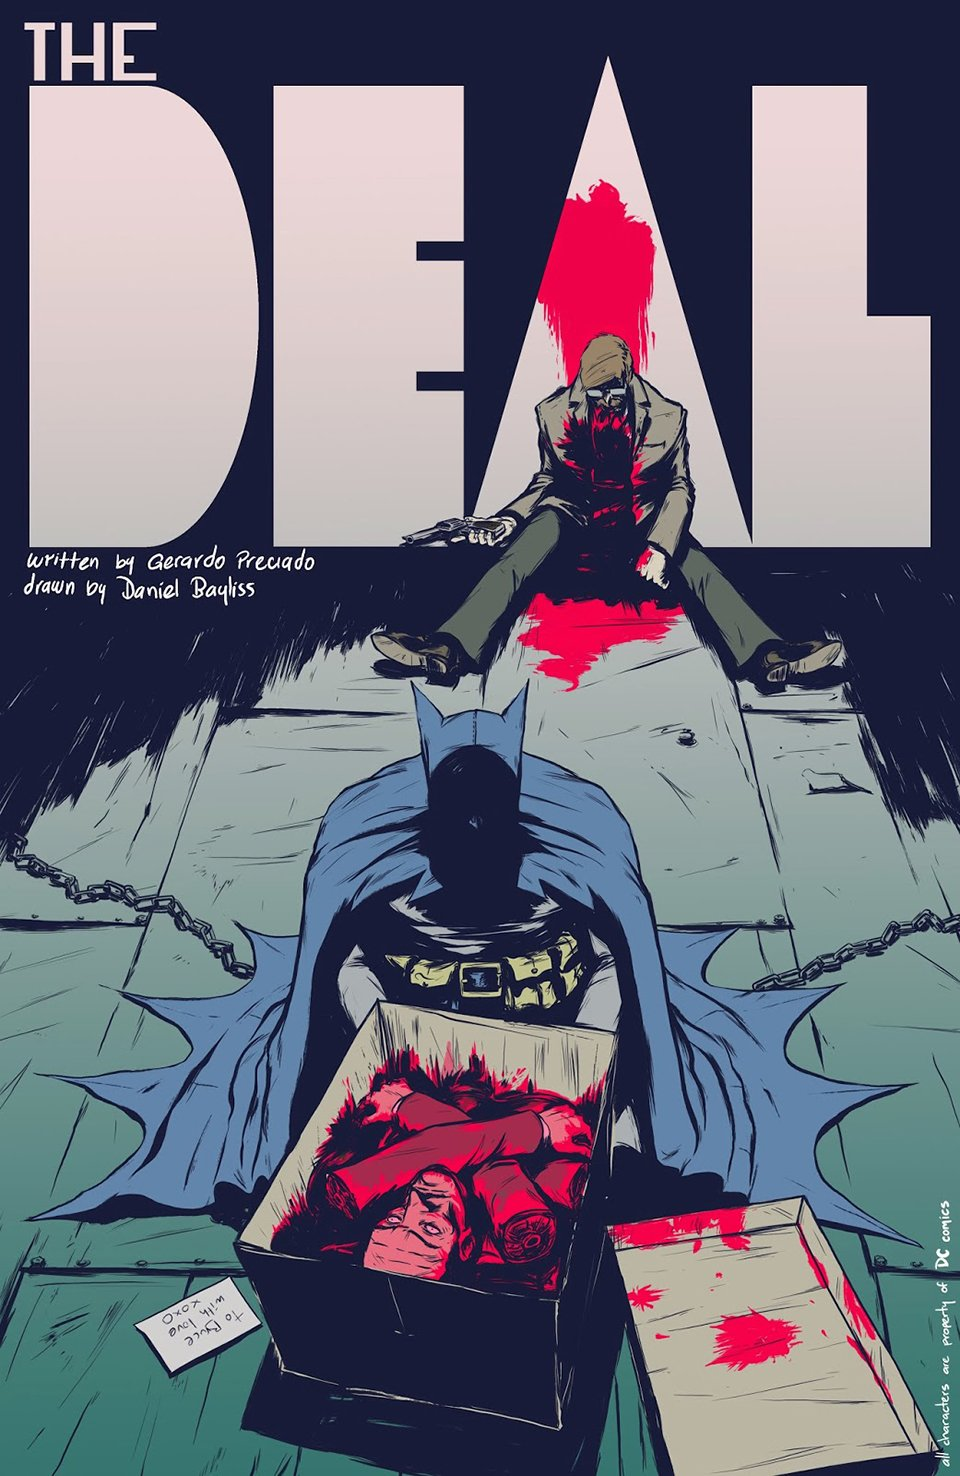 Batman: The Deal